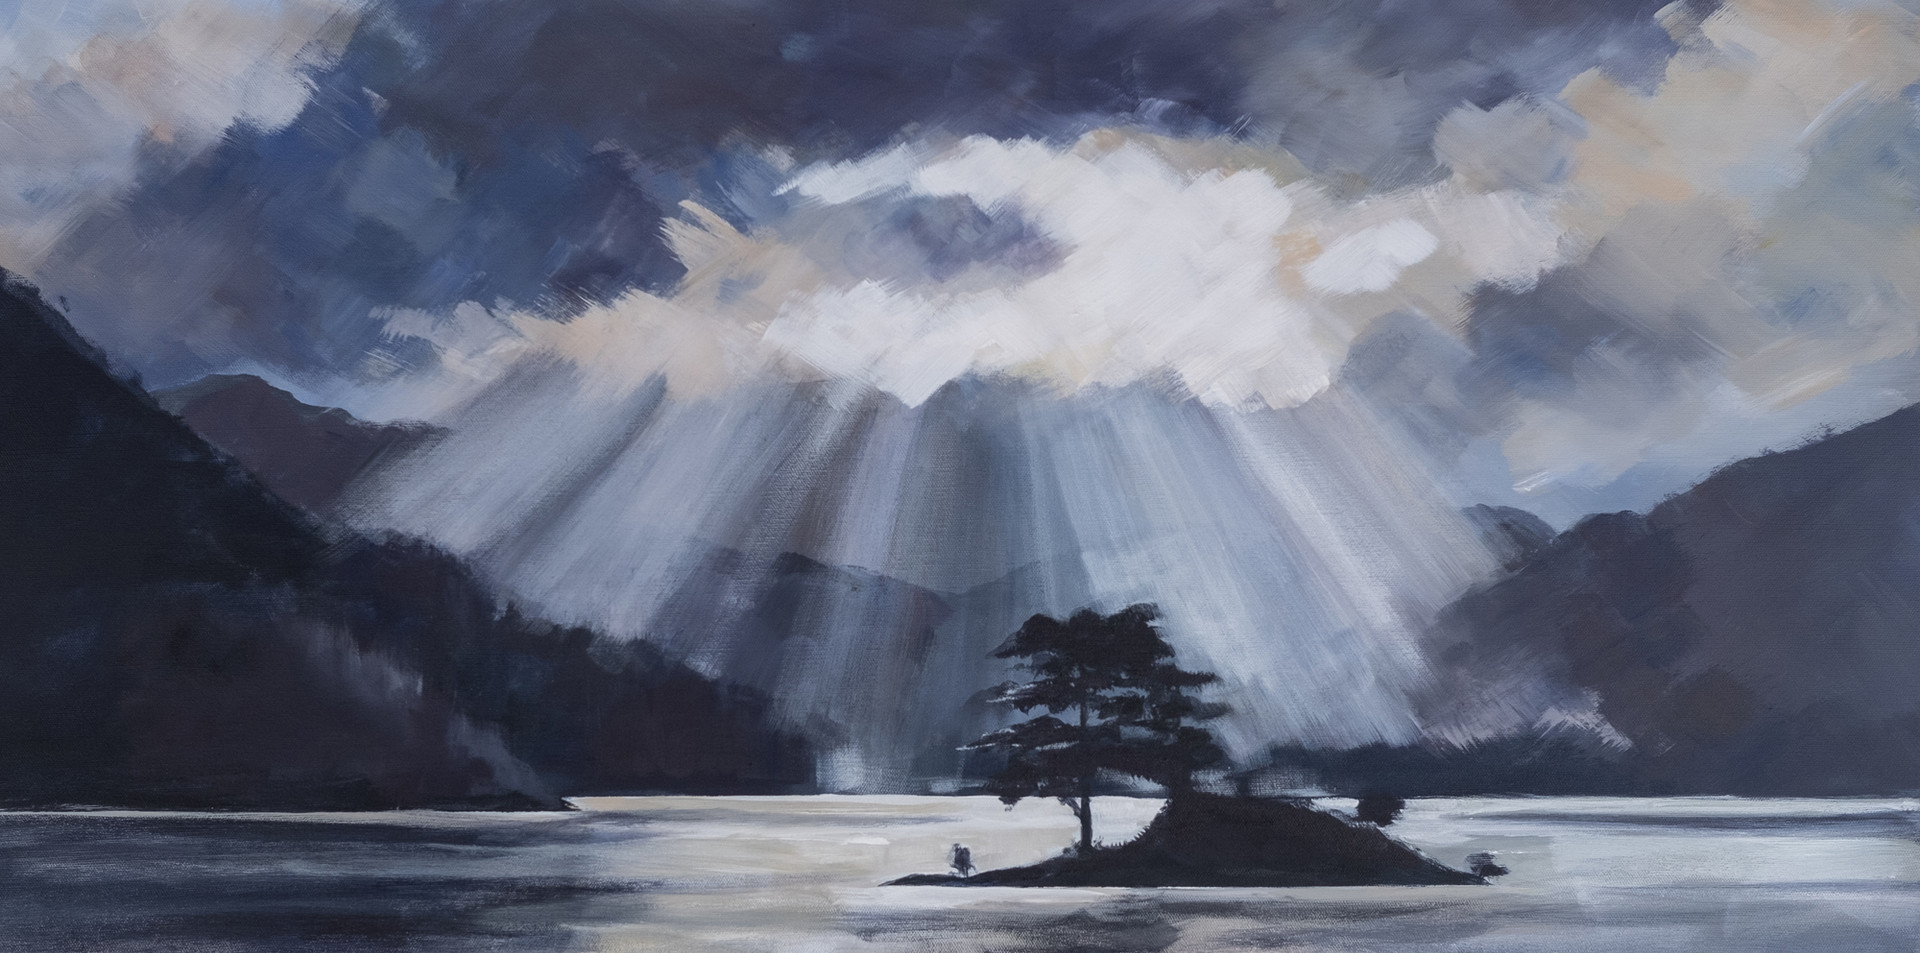 Breaking through - Ullswater after a storm